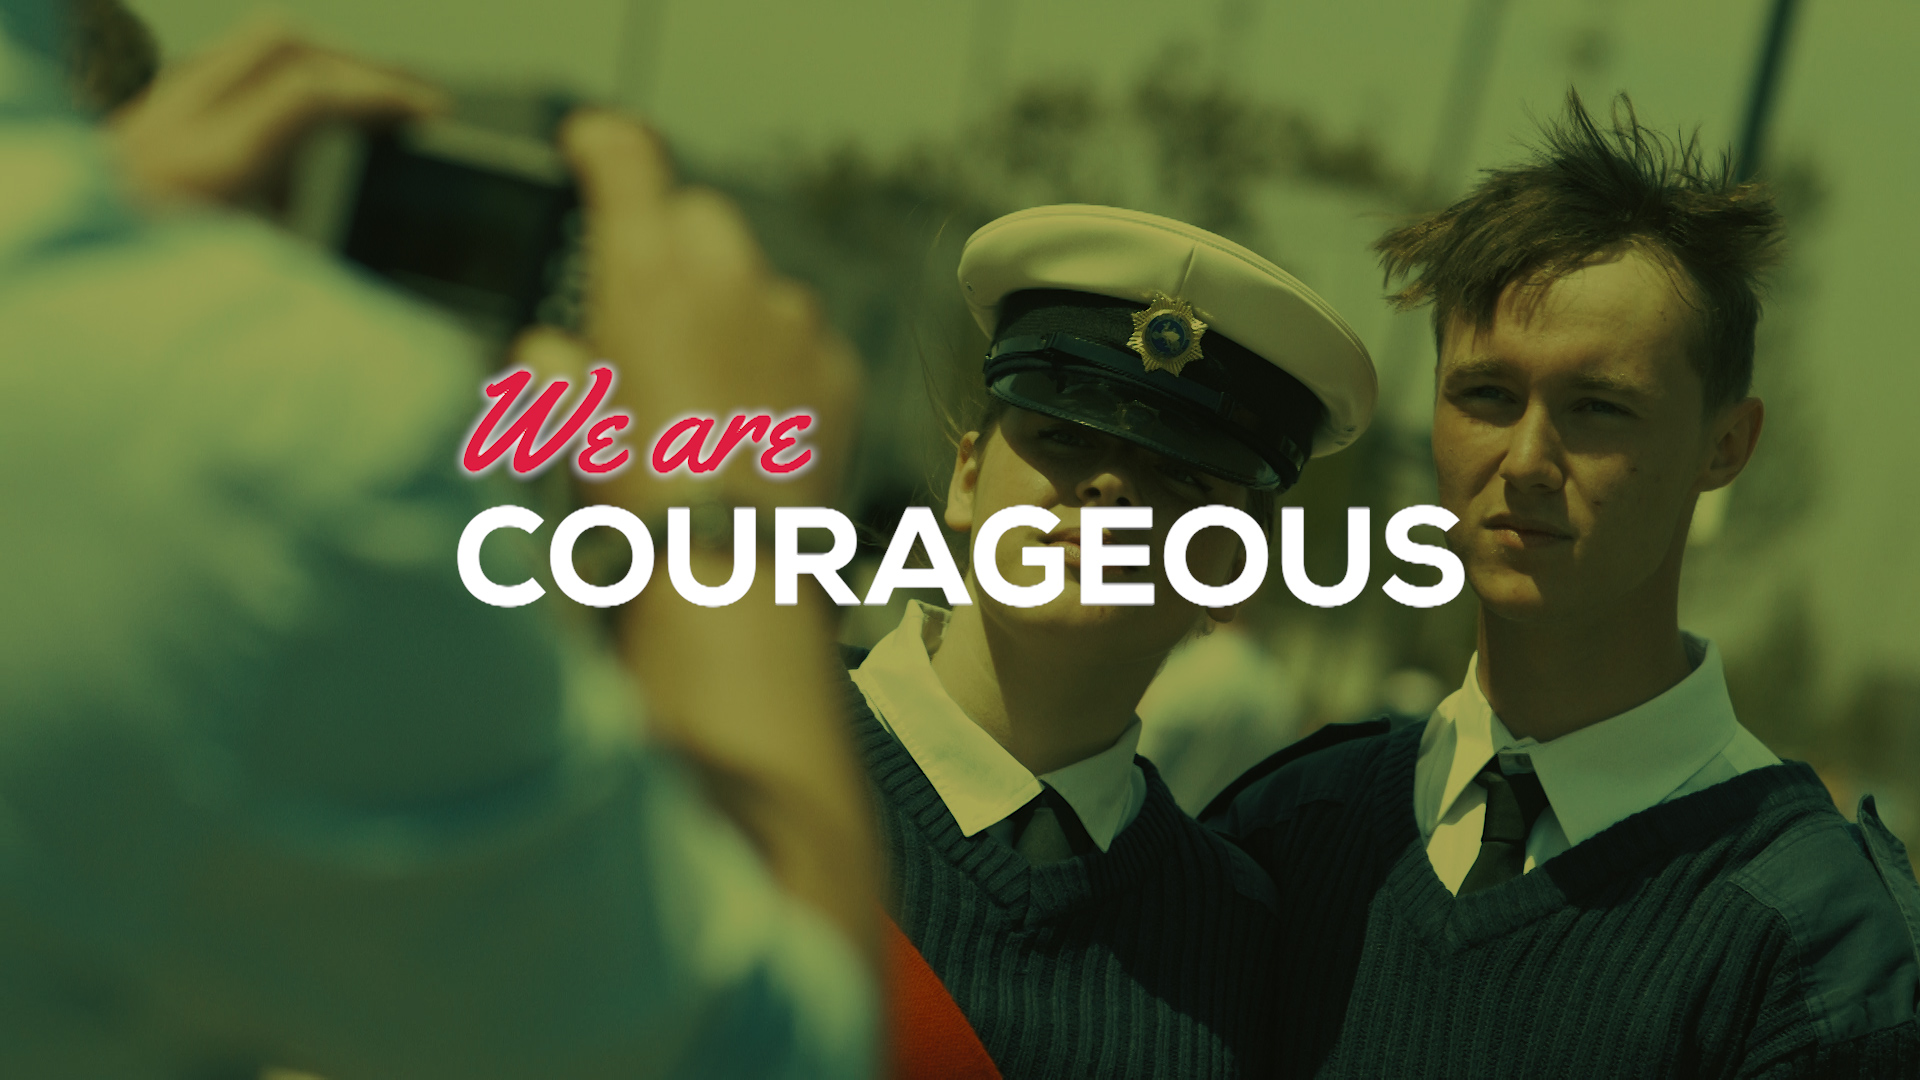 We Are Courageous